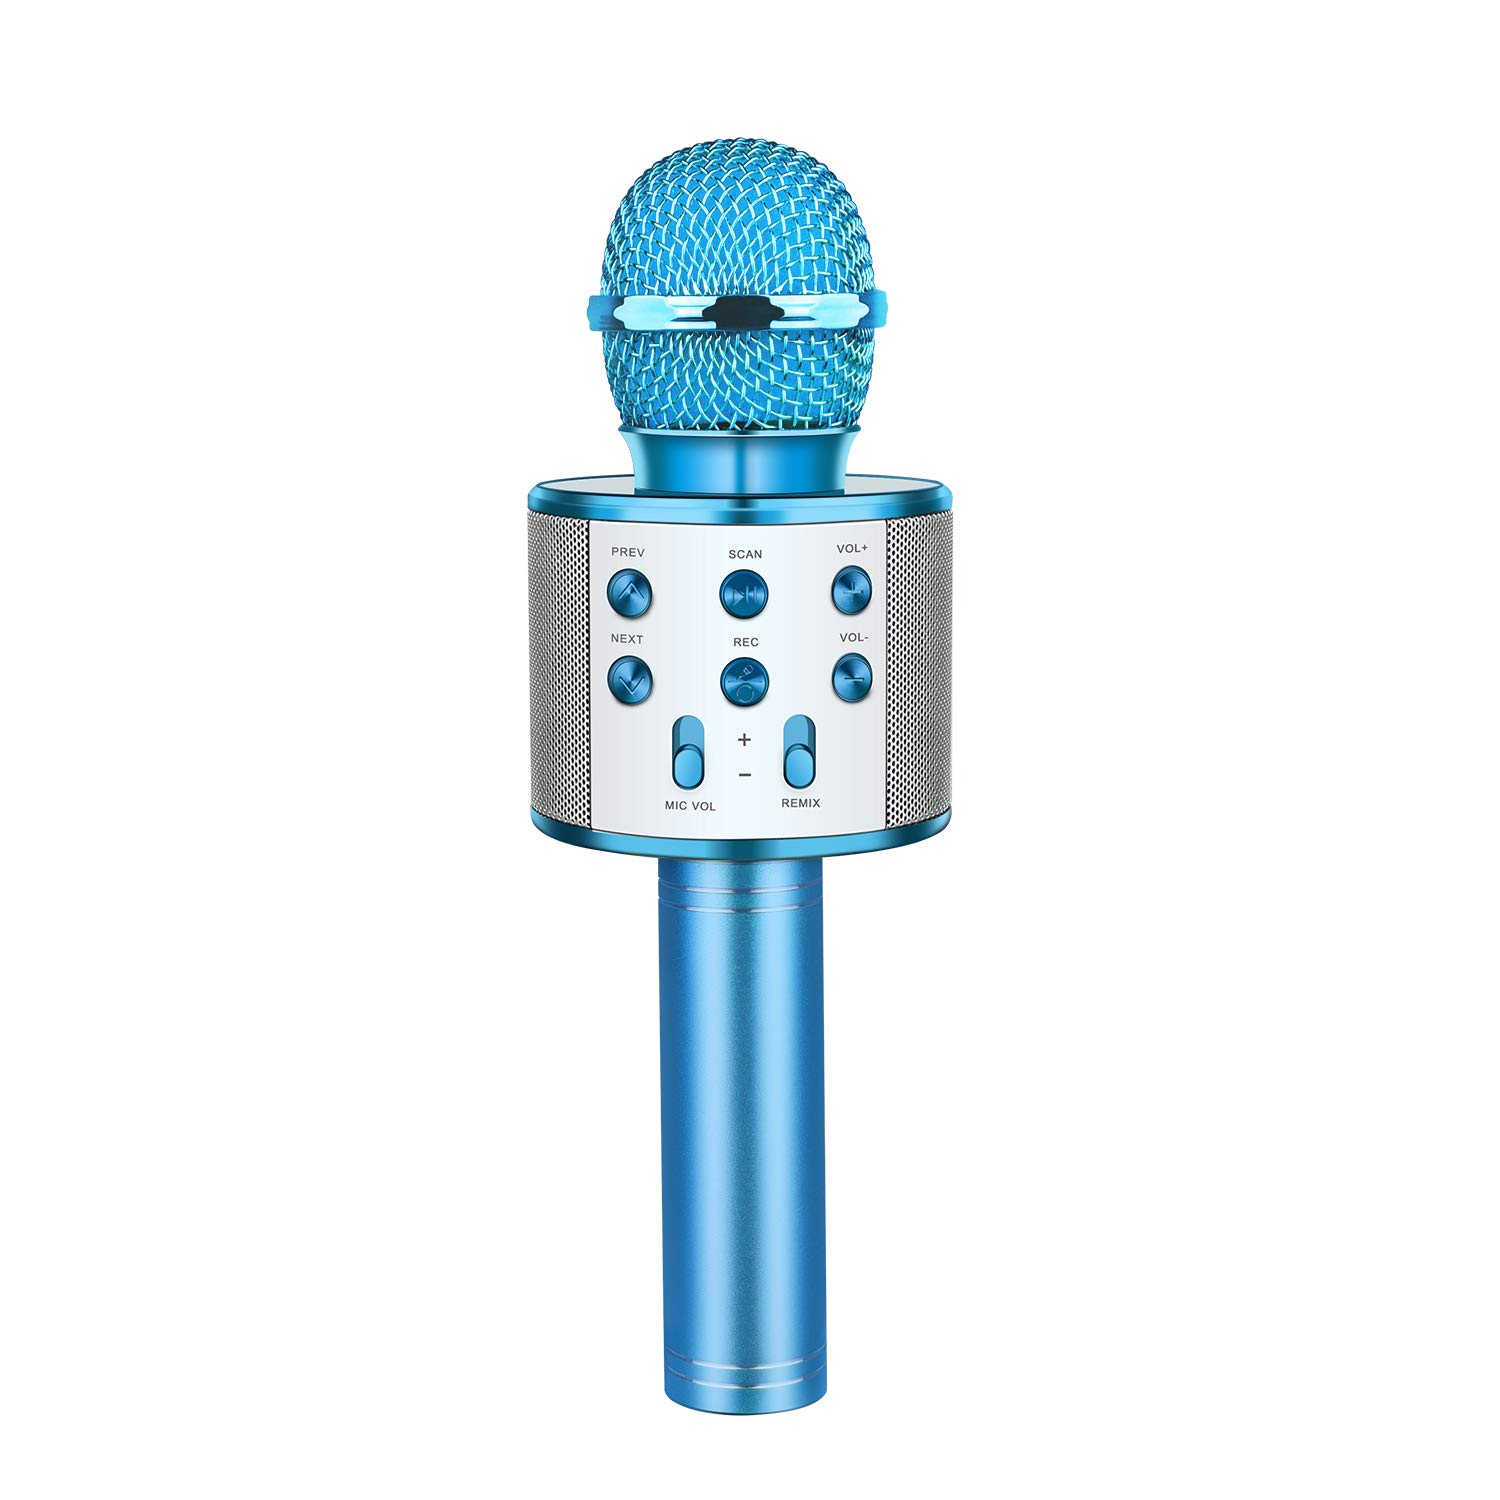 Kids Microphone Wireless Bluetooth, TOP TOY New Toys for 4-15 Year Old Boys Girls Wireless Karaoke Mic Machine Bluetooth for Kids Adults Hot Gifts Singing Games for Kids Teen Boys Girls Blue TTMP04 by ATOPDREAM (Image #1)